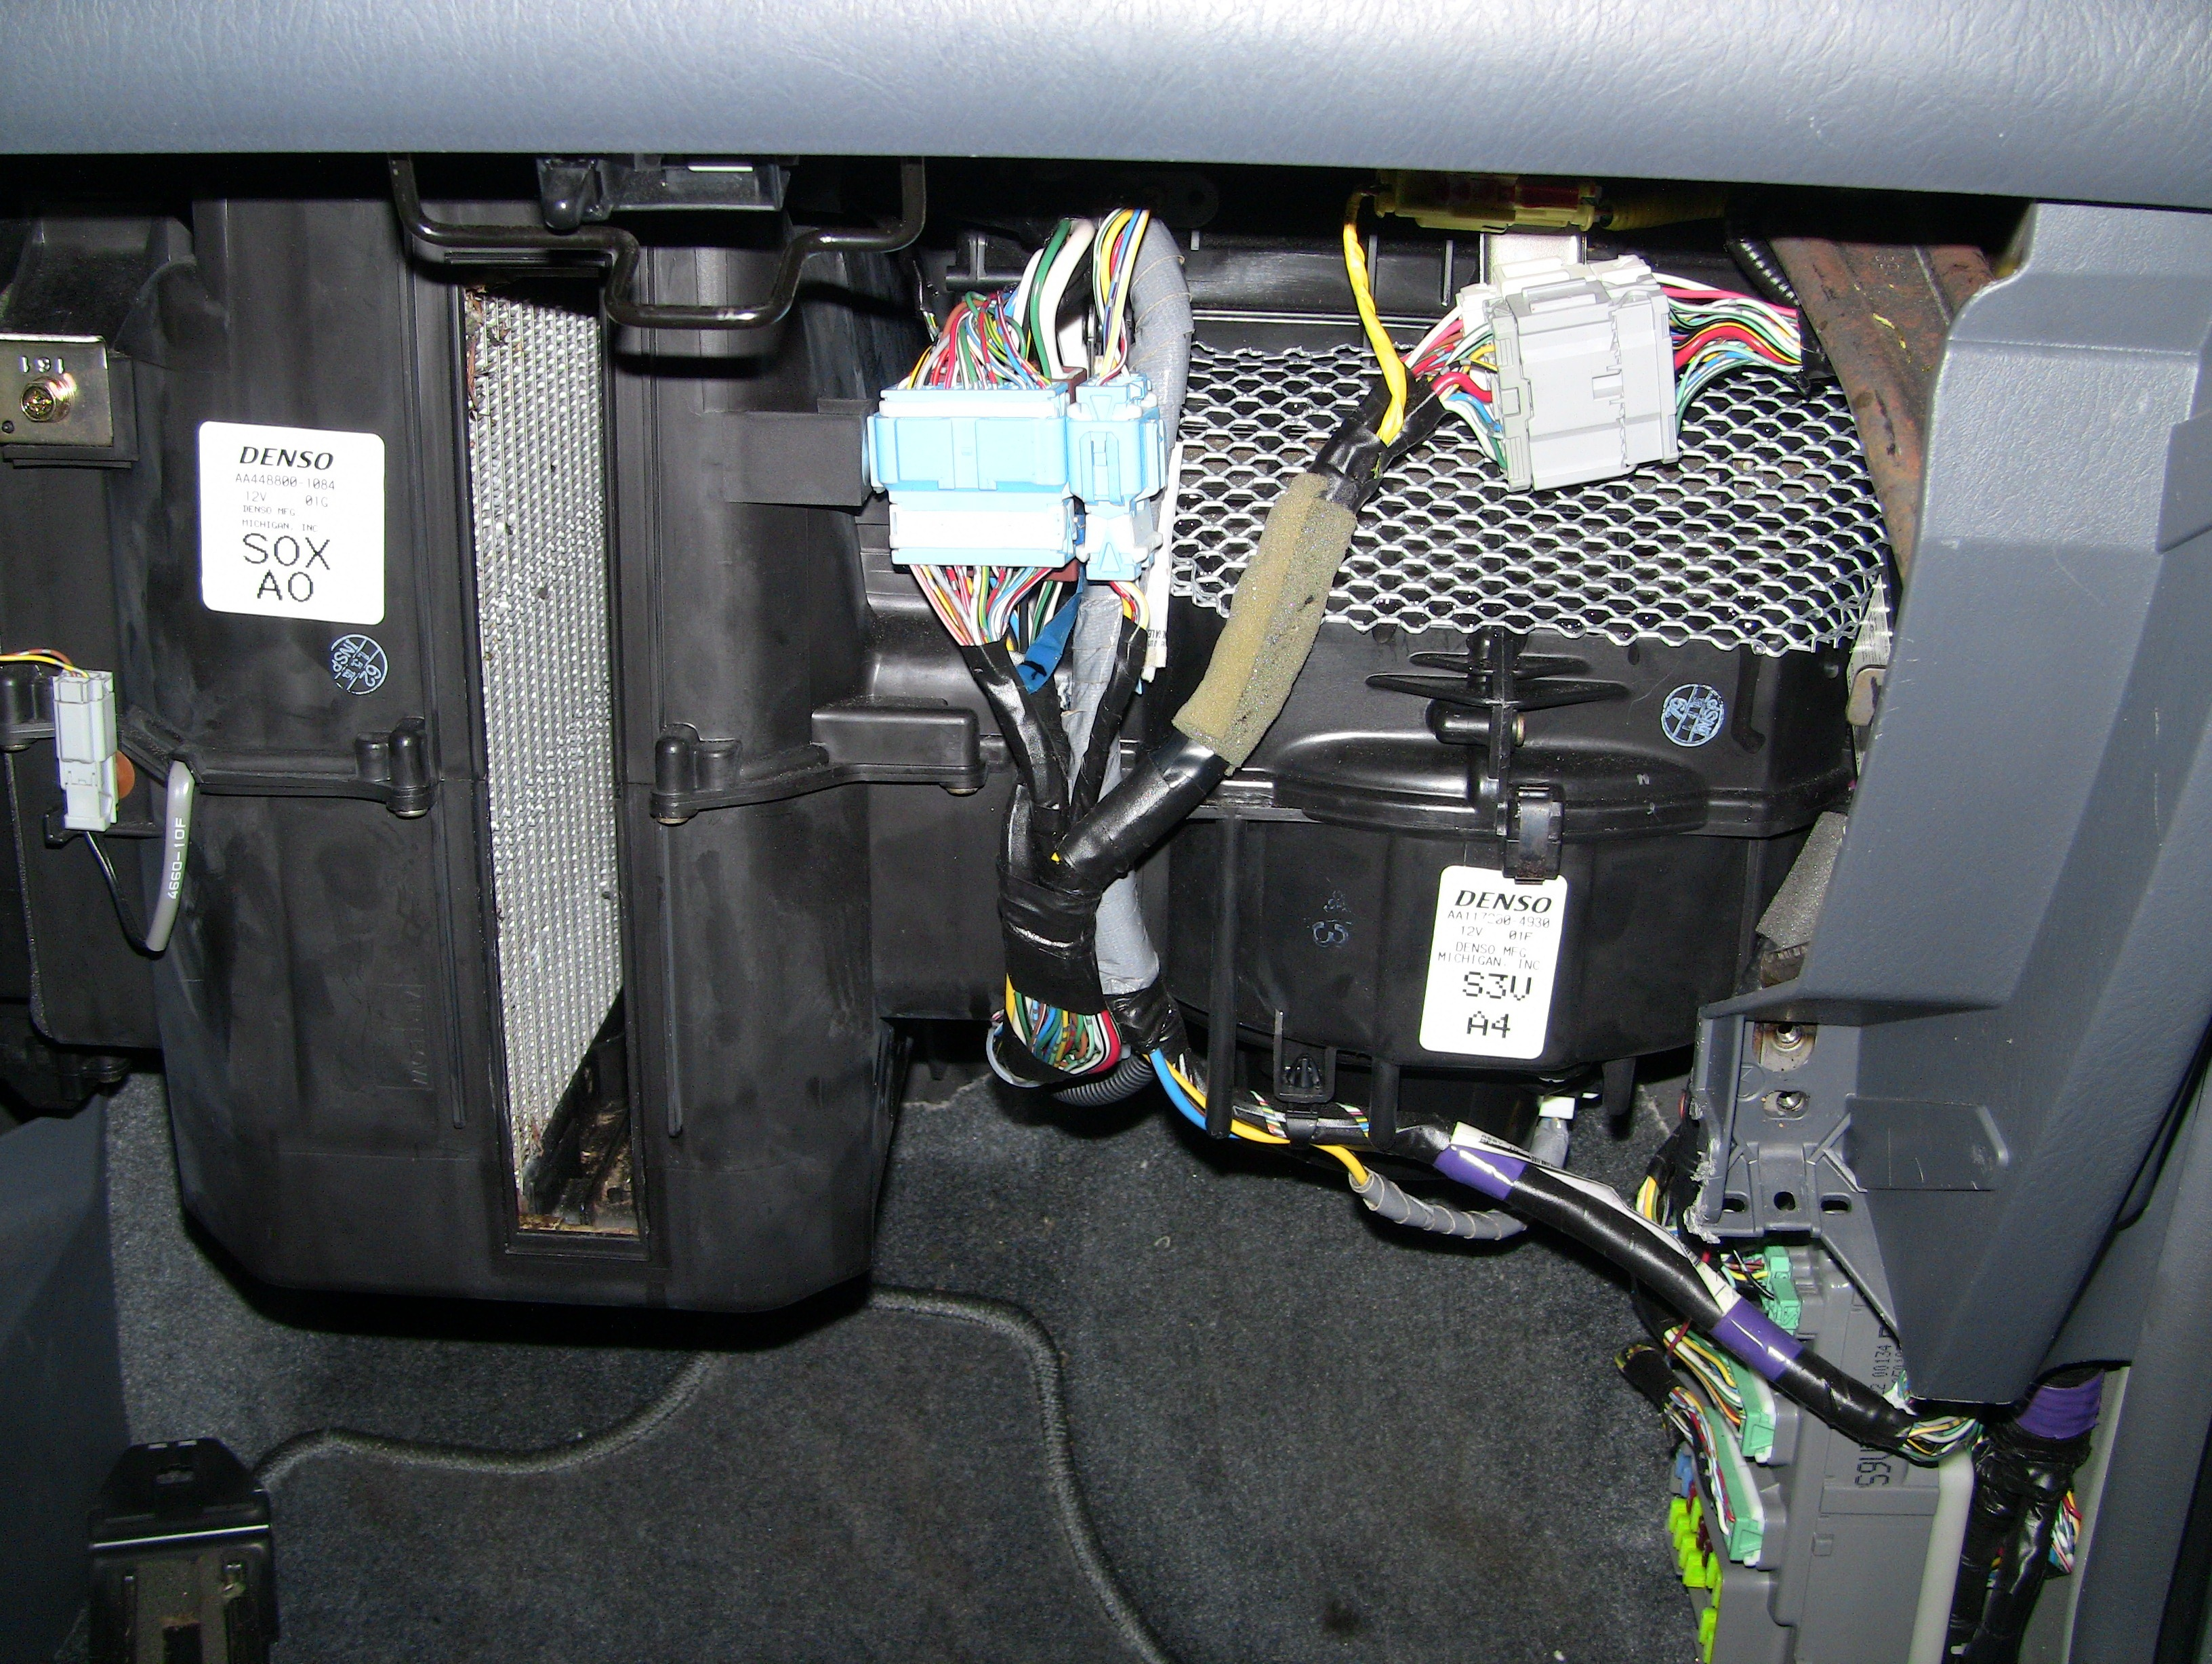 More On The Mice In My Honda Pilot Pete Browns Insulation Around Electrical Wiring Repairs Youtube Img 2495 2499 2506